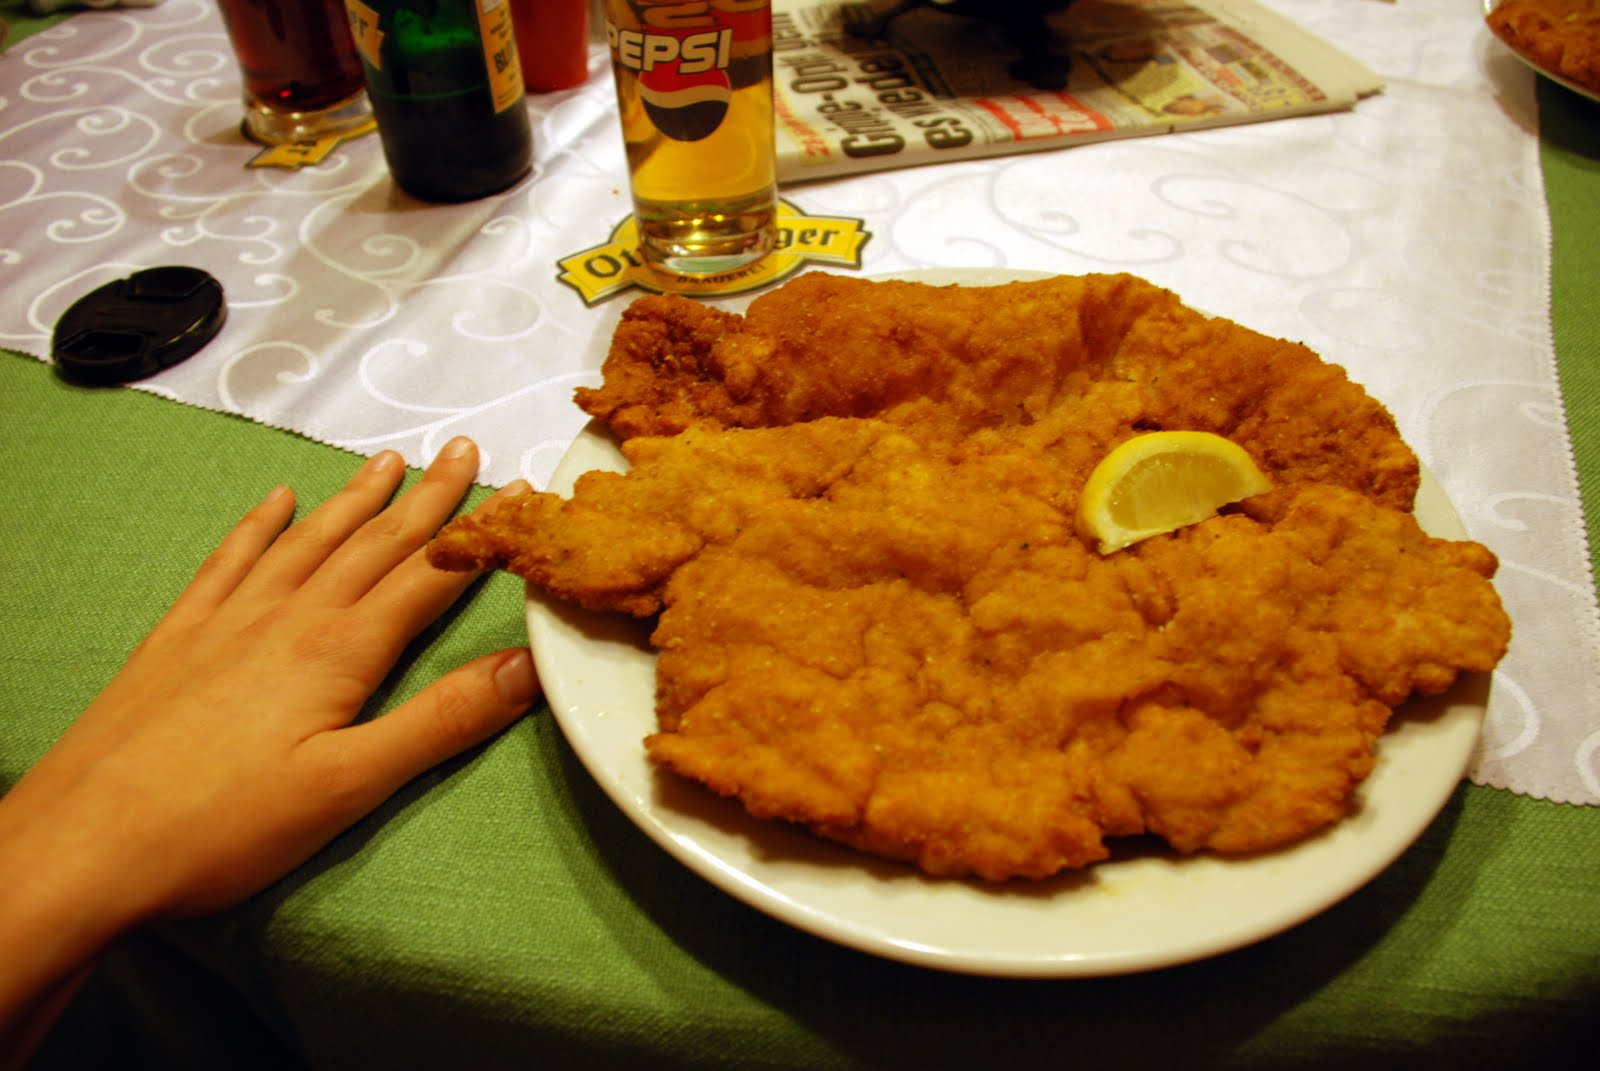 I'll Have Everything...And a Side to Go: Wienerschnitzel